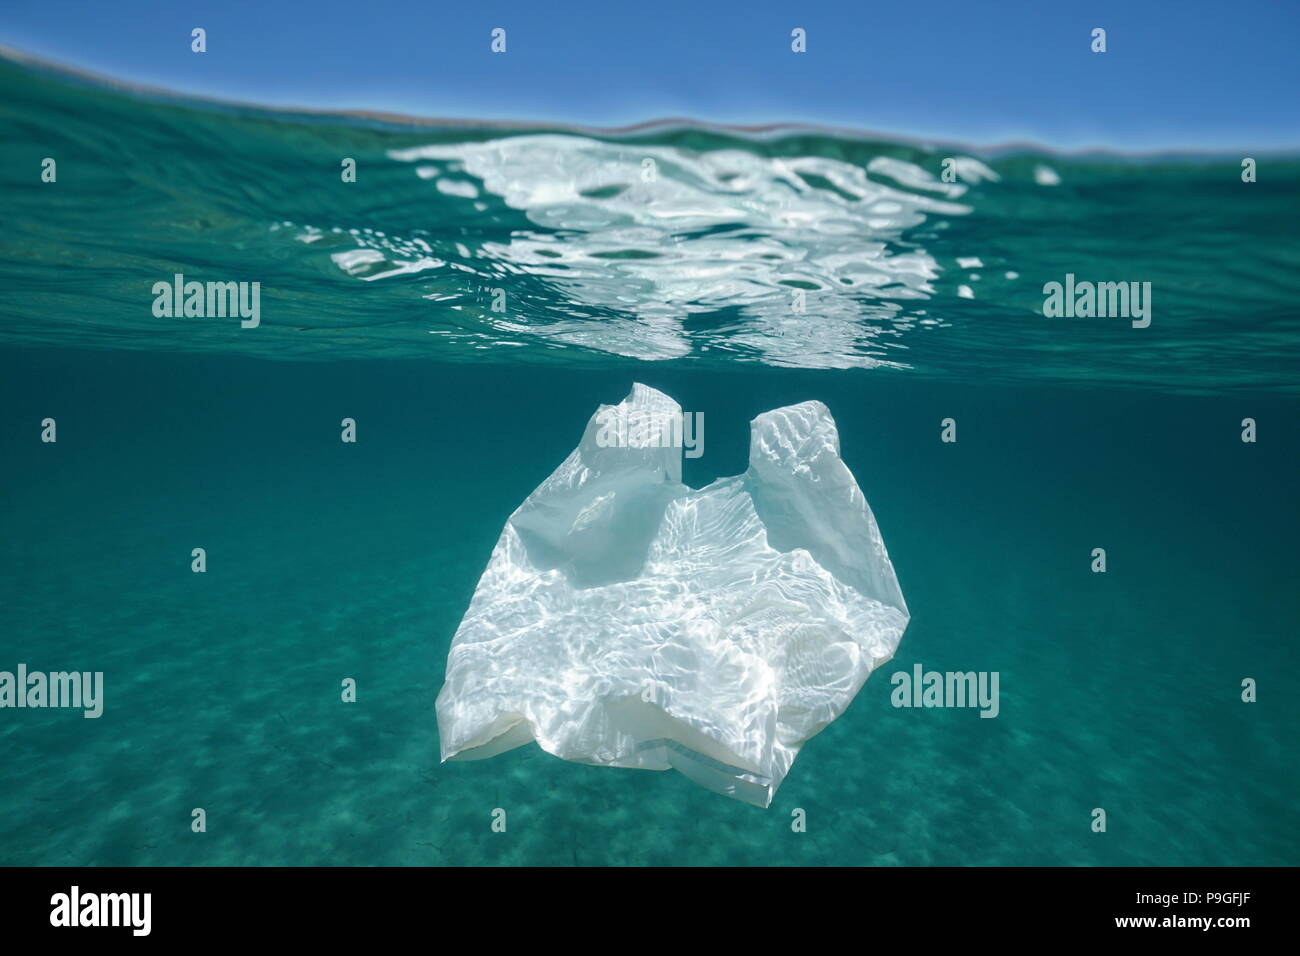 Underwater pollution a plastic bag adrift in the Mediterranean sea below water surface, Almeria, Andalusia, Spain - Stock Image